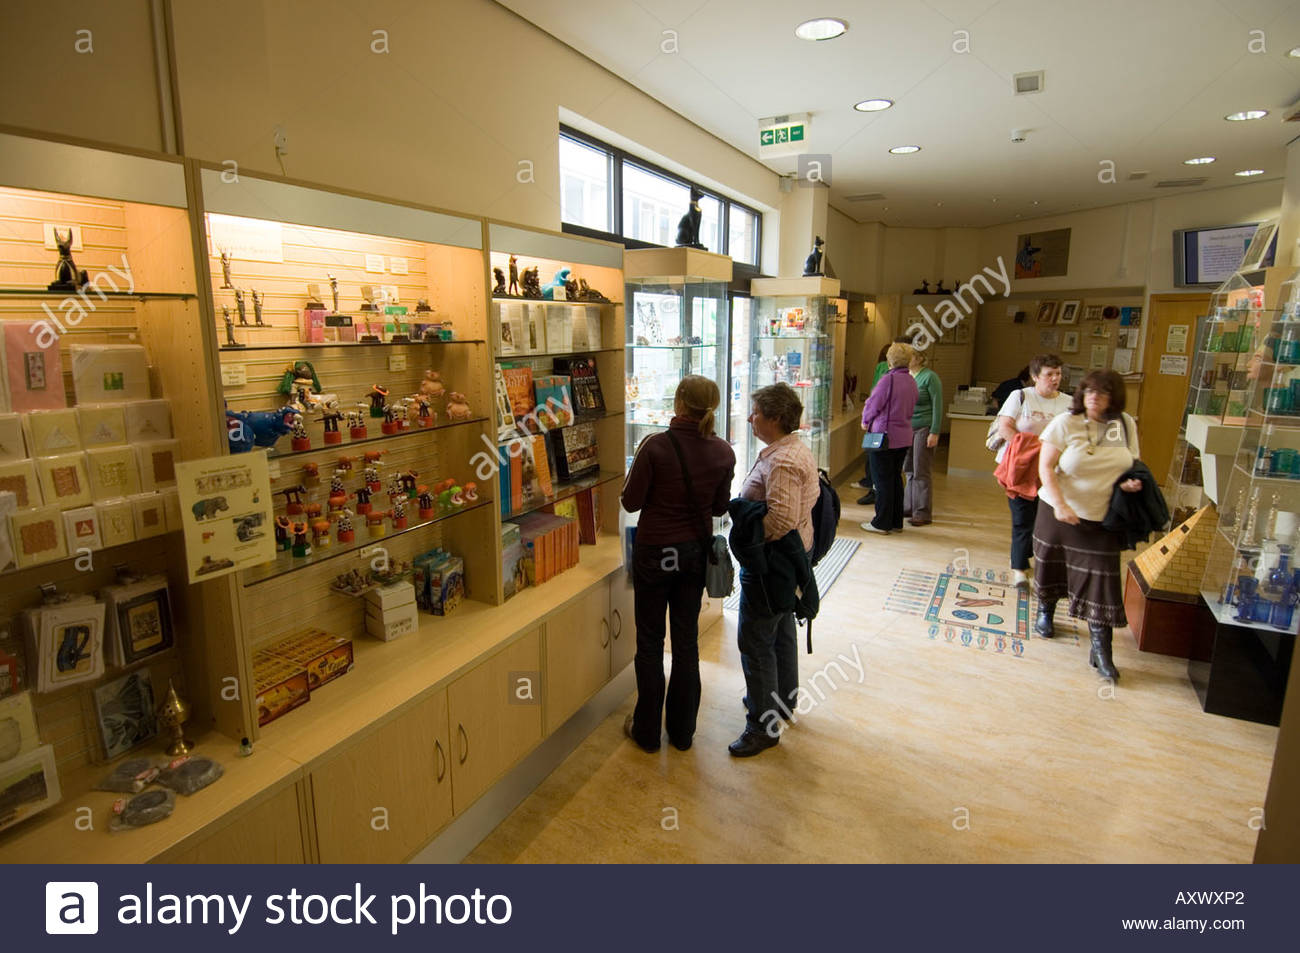 Egypt Centre Swansea (Abertawe), people in The Egypt Centre, University of Wales Swansea, UK Stock ...